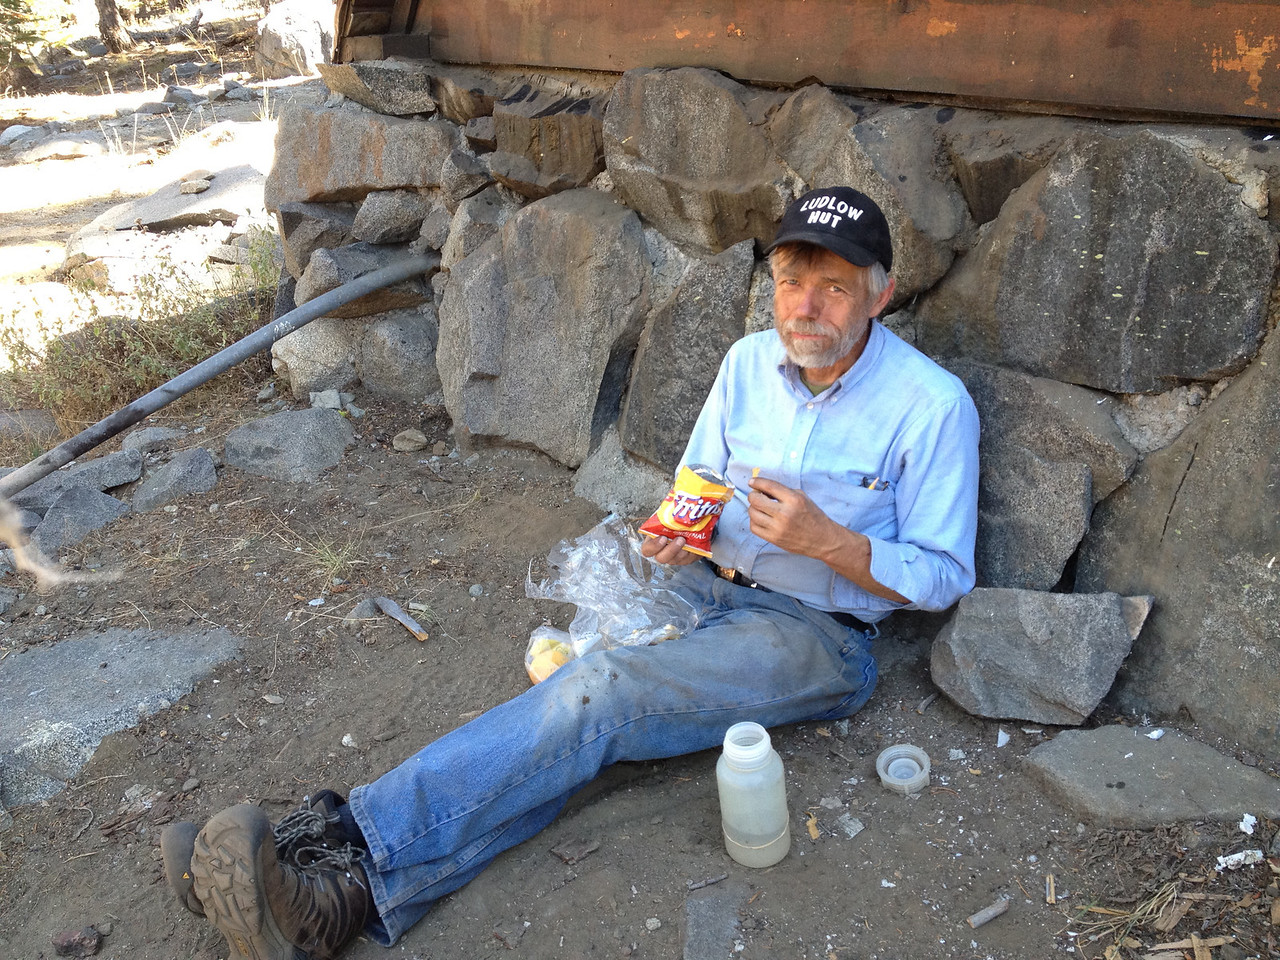 One of my heroes:  Dick Simpson.  Stanford astrophysicist by day, Sierra Club backcountry ski hut coordinator by night.  Super fit and can chop wood like nobody's business!  (See video at the end if you want to see understated poetry in motion!!!!)